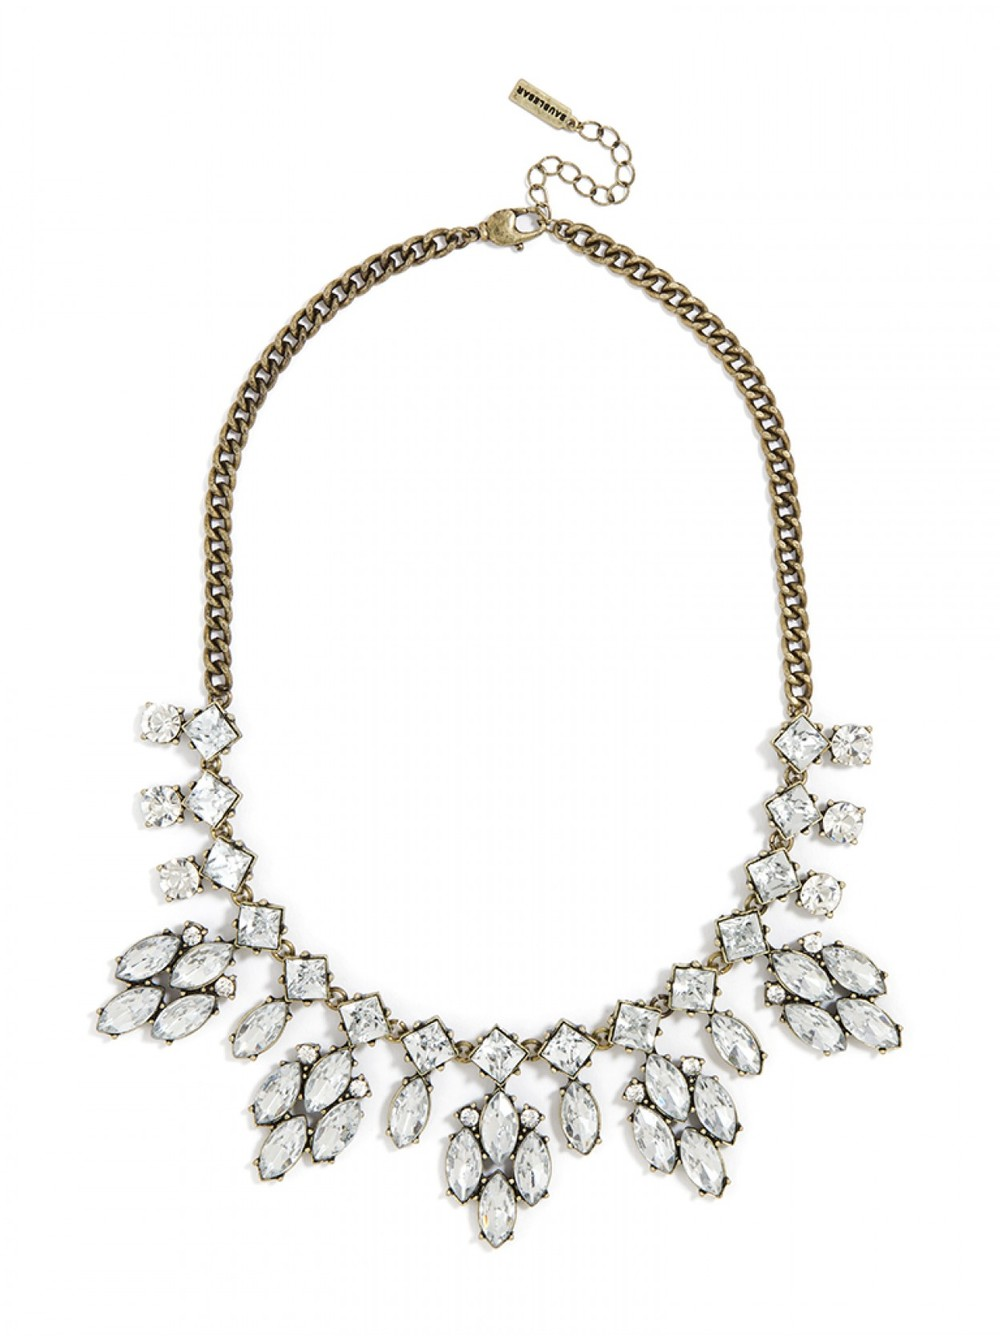 Photo from baublebar.com (On sale limited time only!)